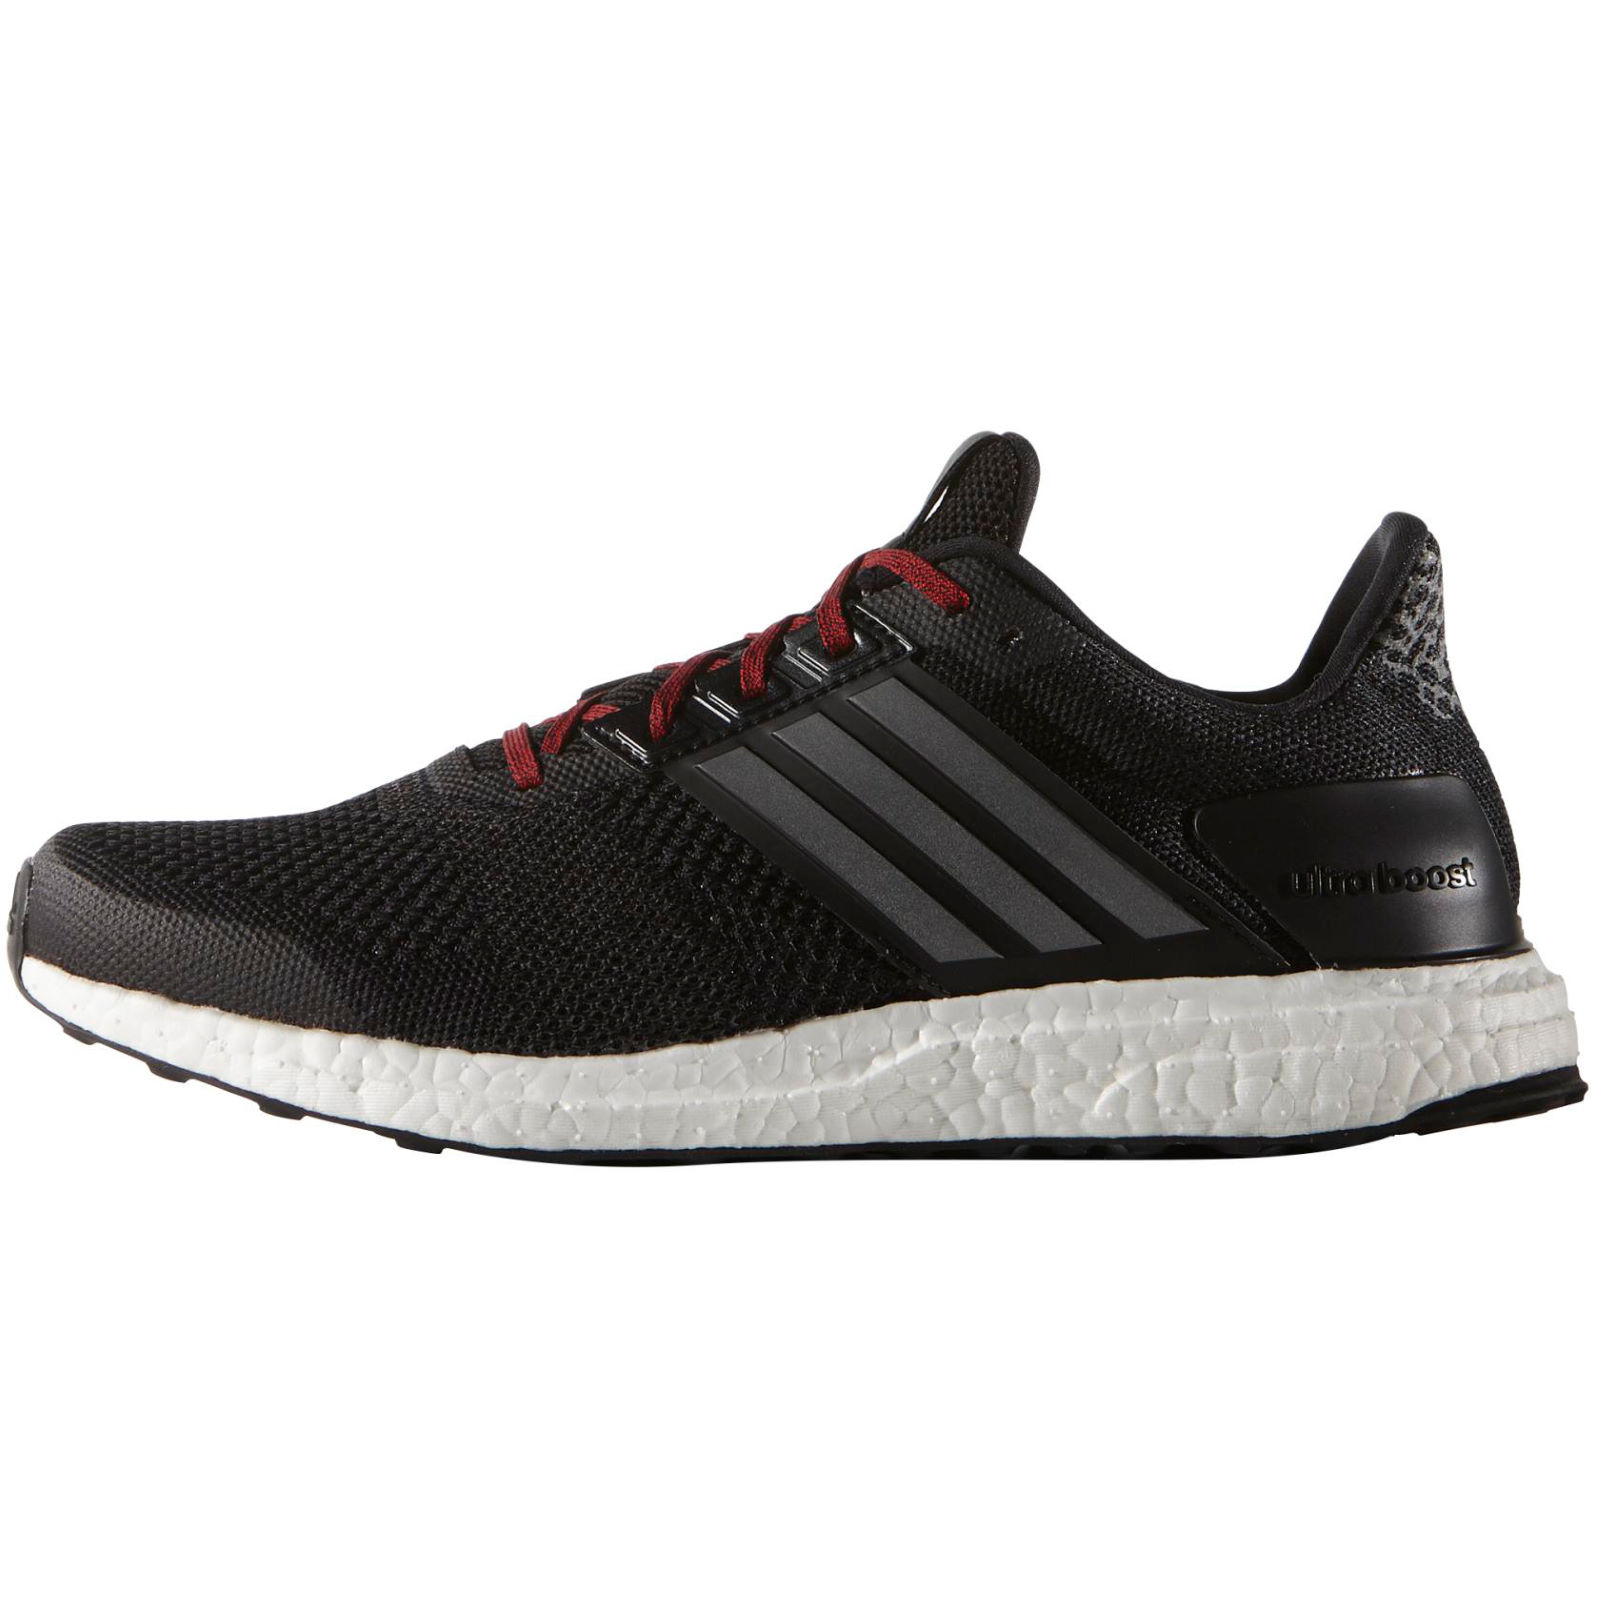 Adidas Boost St Running Shoes